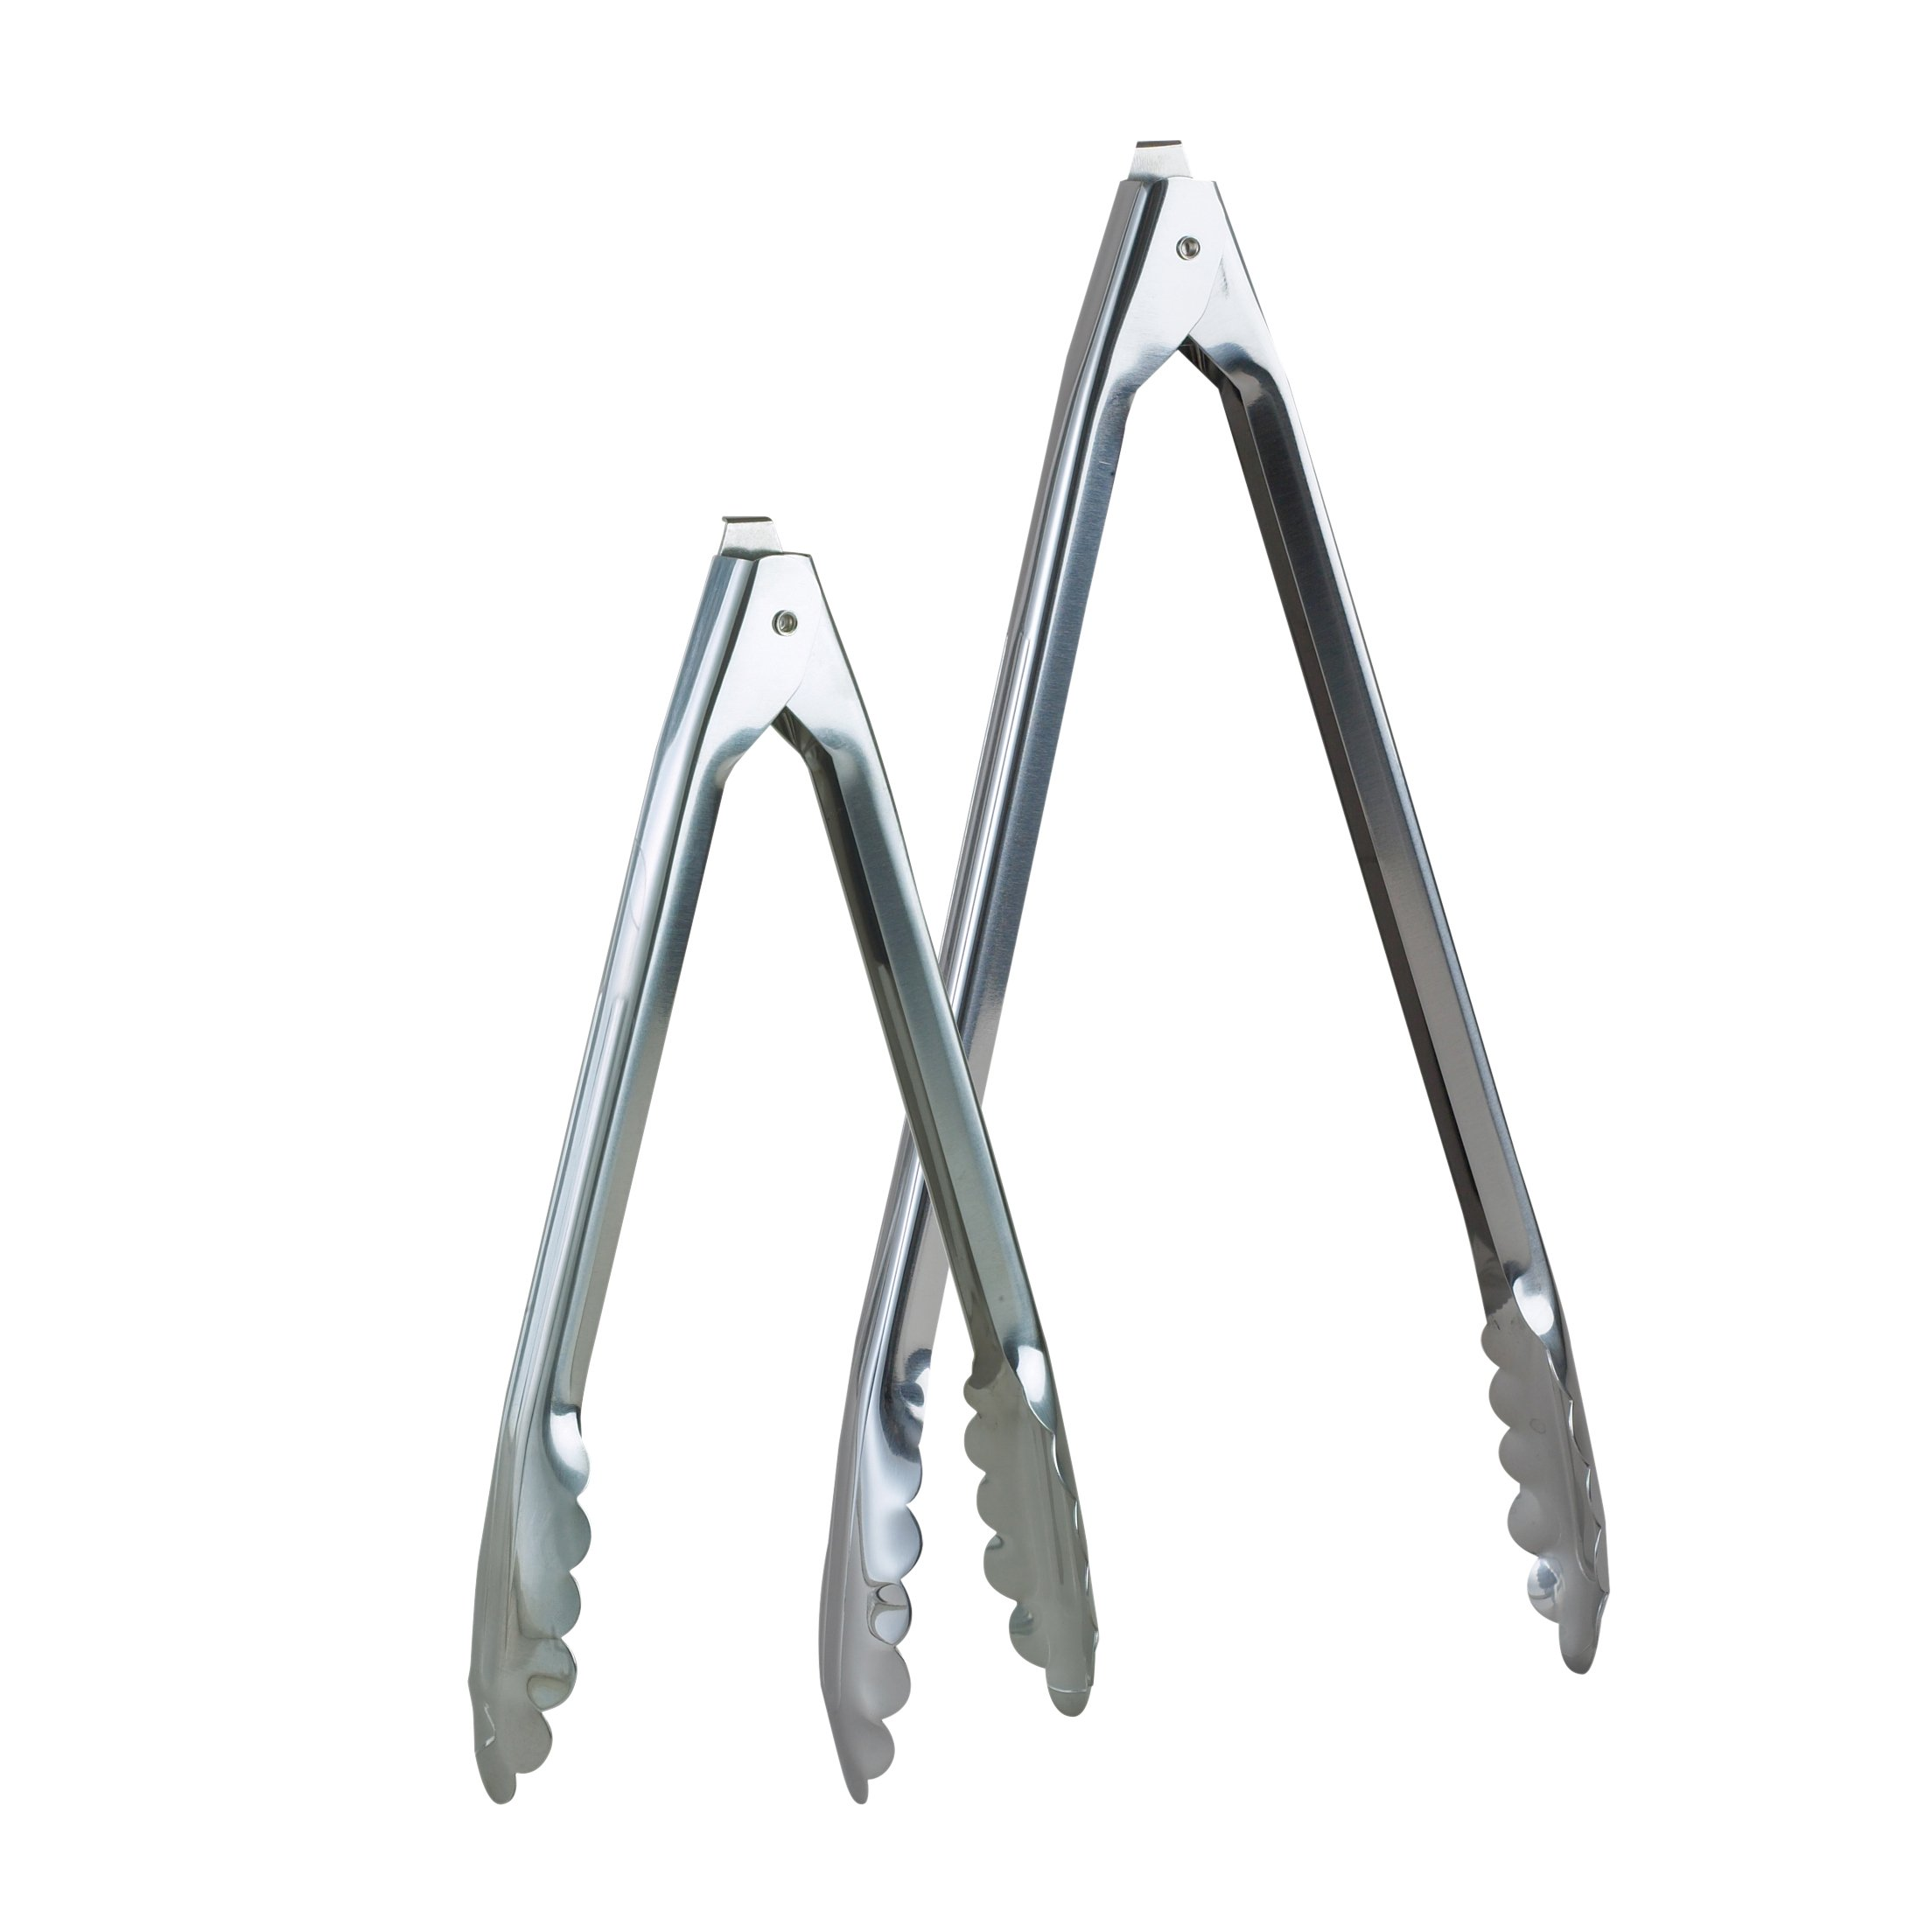 HIC Harold Import Co. BUN00101 Spring Locking Food Tongs for Kitchen and Barbecue, Scalloped Gripping Edge, Stainless Steel, Set of 2, 10-Inch and 12-Inch